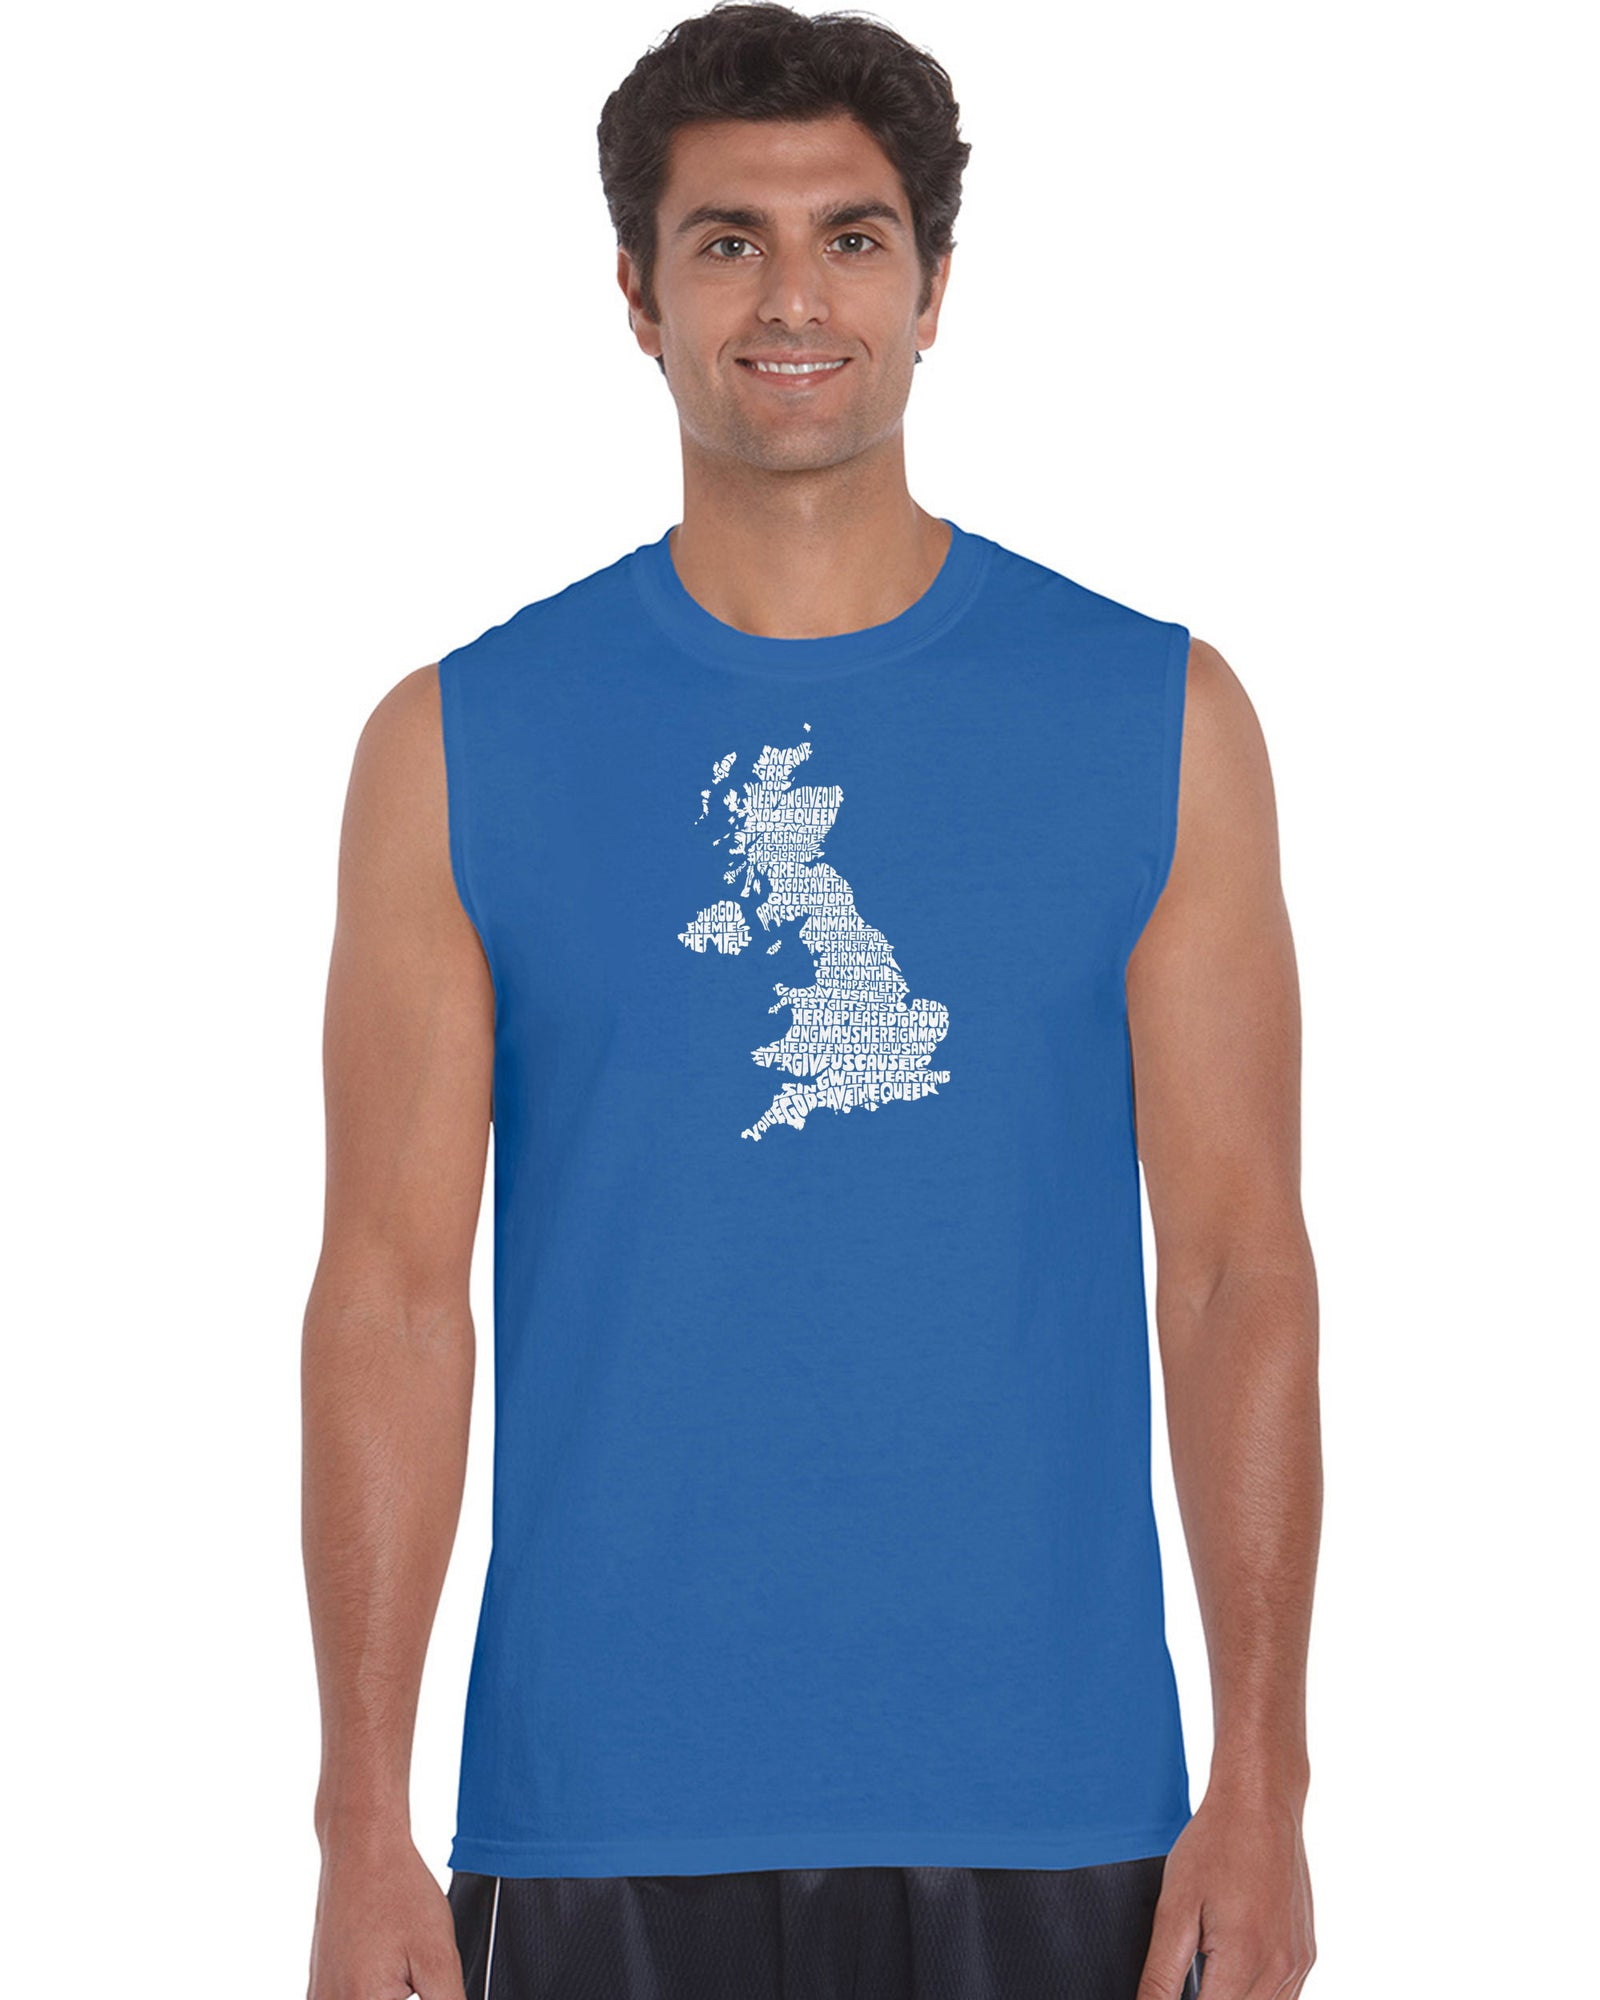 Men's Sleeveless T-shirt - GOD SAVE THE QUEEN